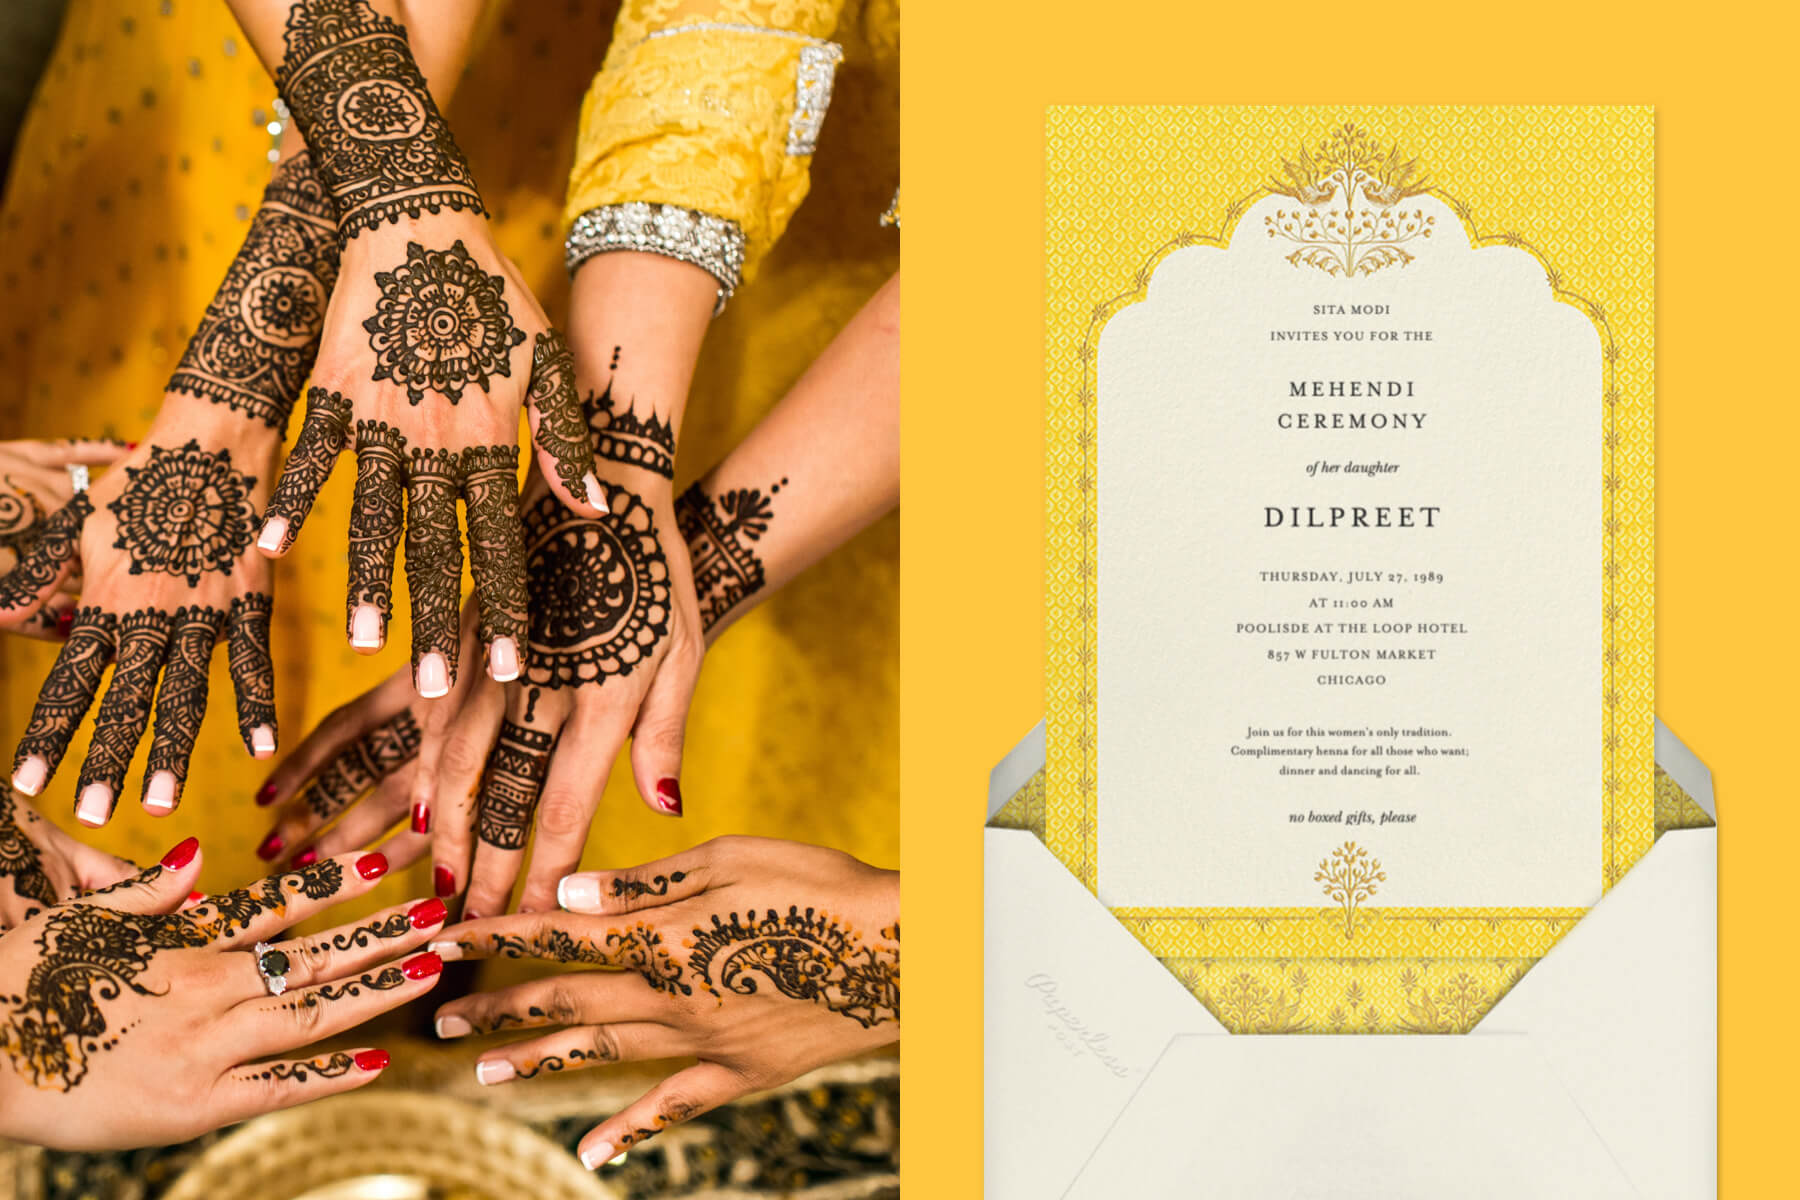 """Left: Women's hands adorned in mendhi and manicures 